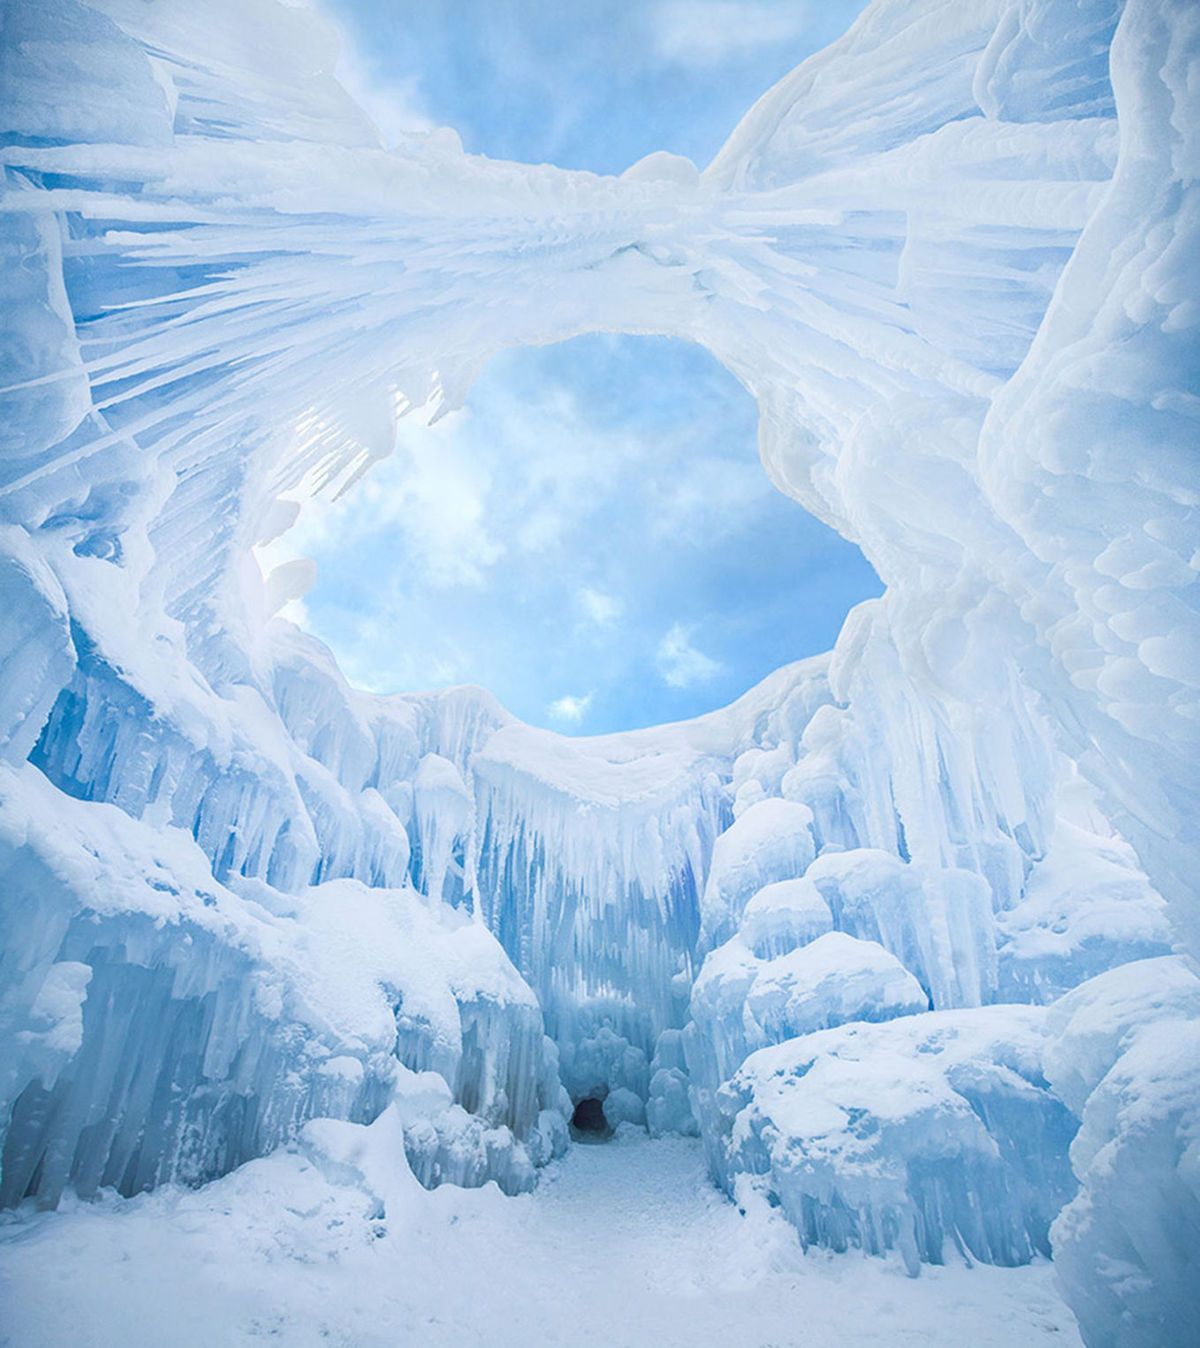 ice castle planned for